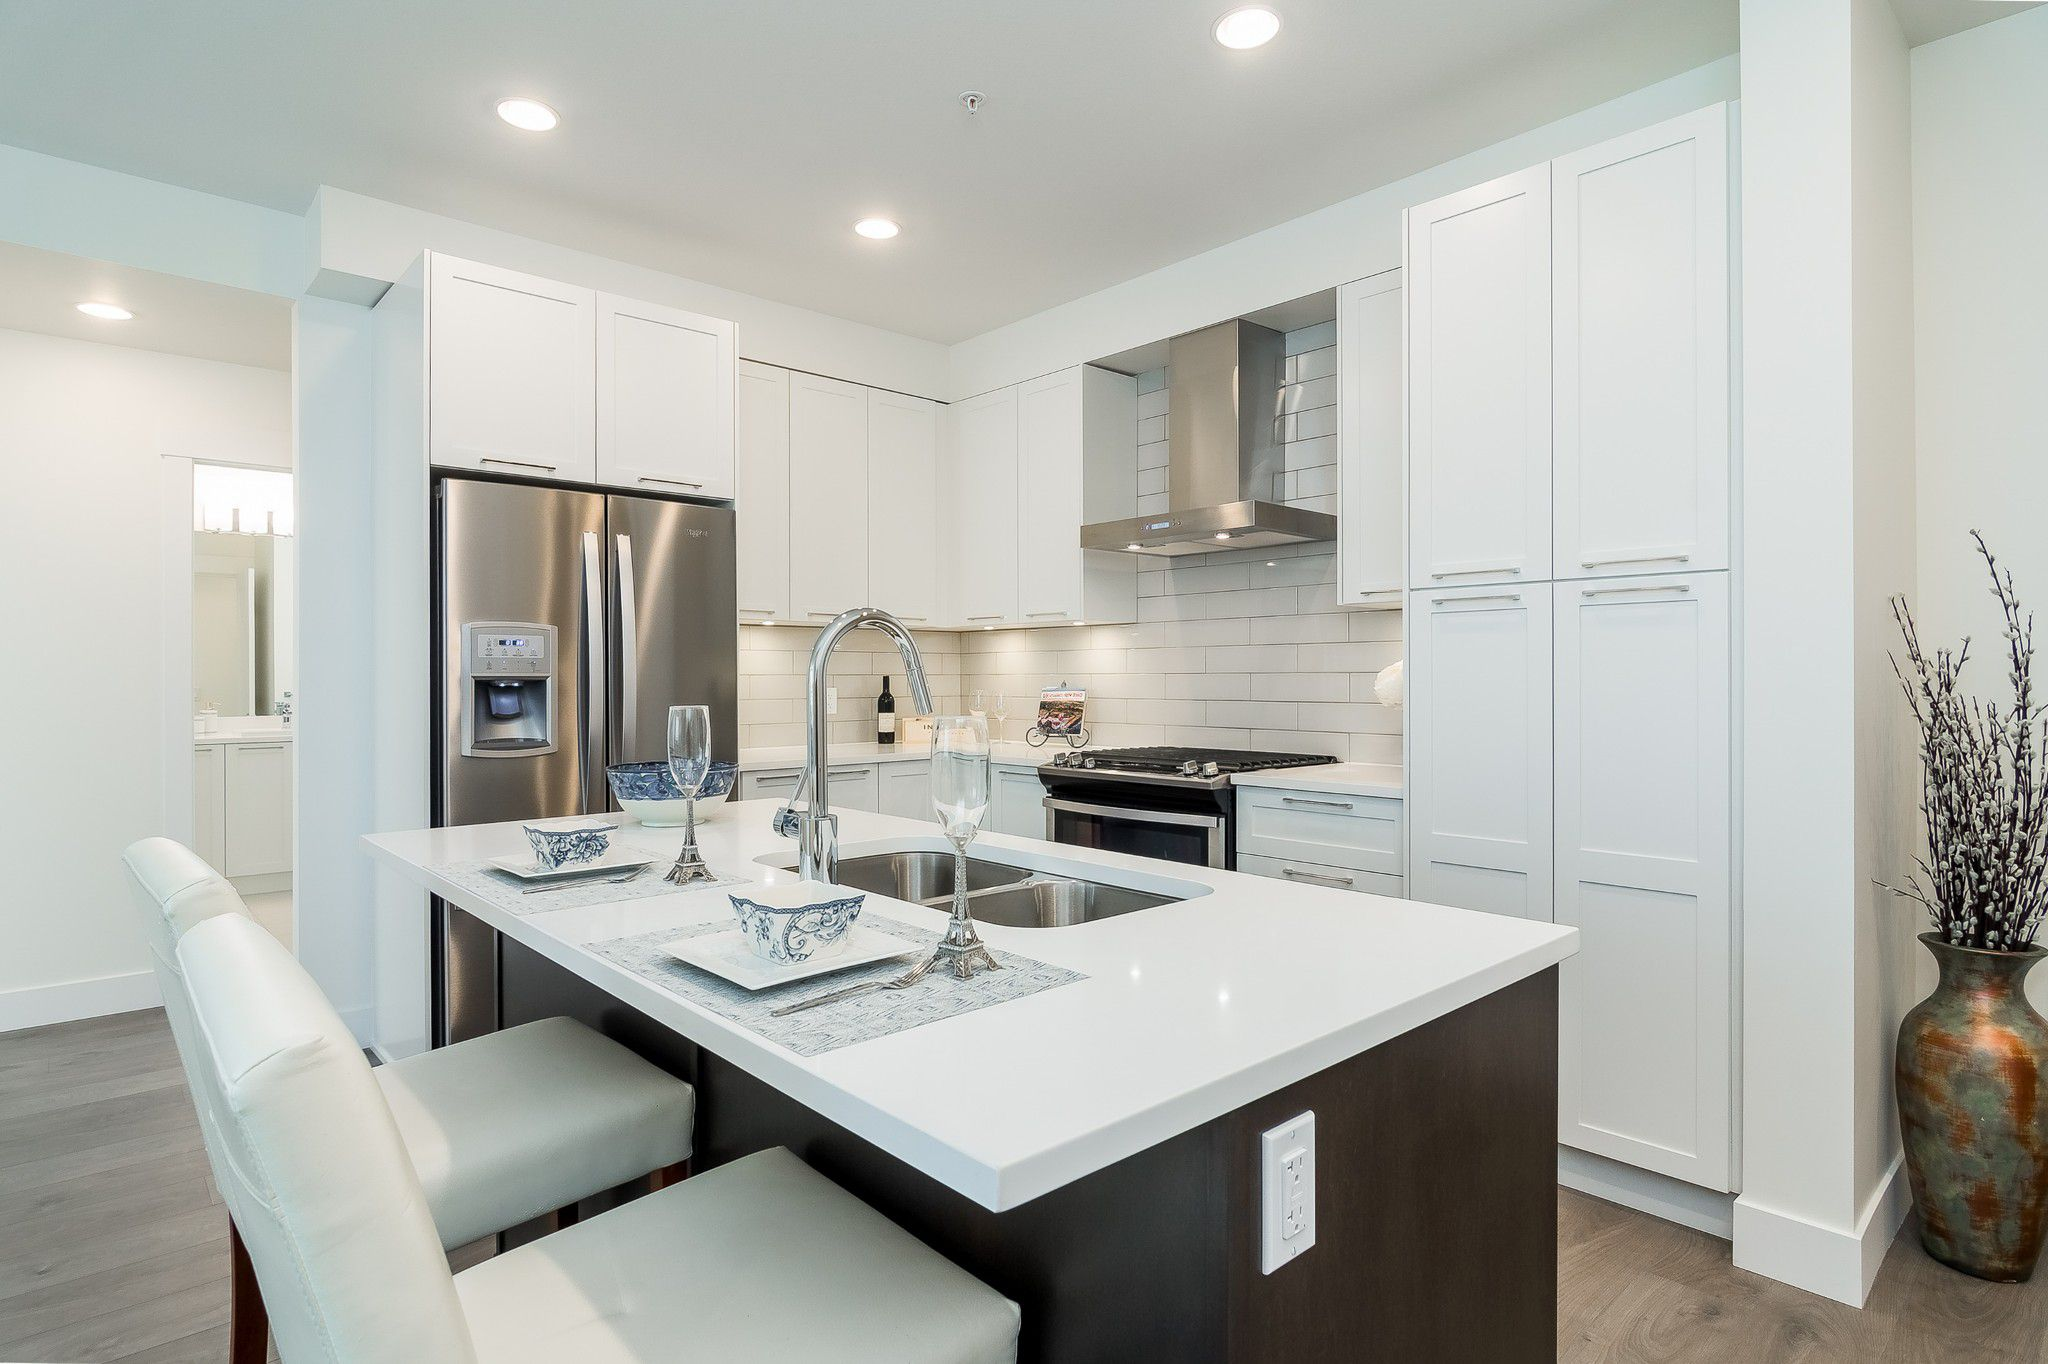 Welcome to #211 - 22087 49 Avenue, Langley, BC in the sought-after luxurious Belmont by Infinity!